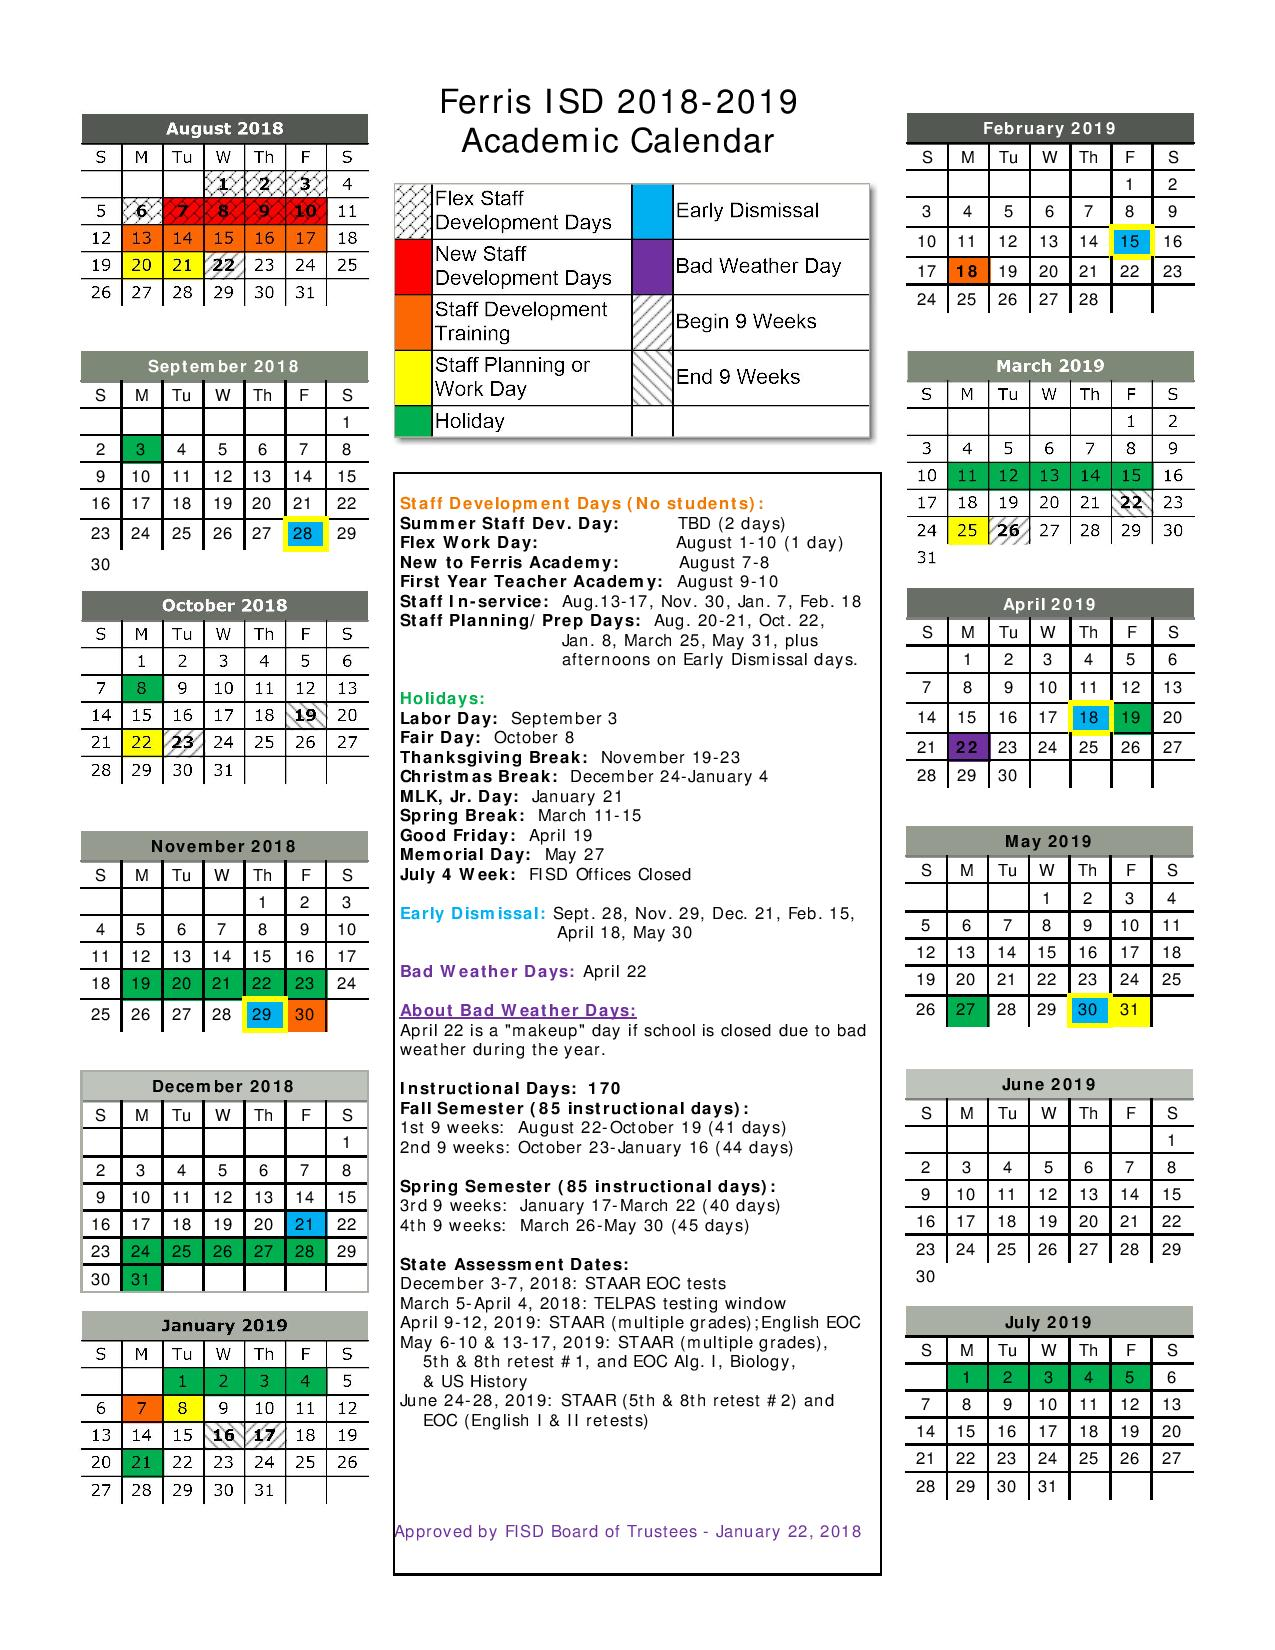 Walmart Fiscal Year 2019 Calendar With District 2018 Student Handbook And Code Of Conduct